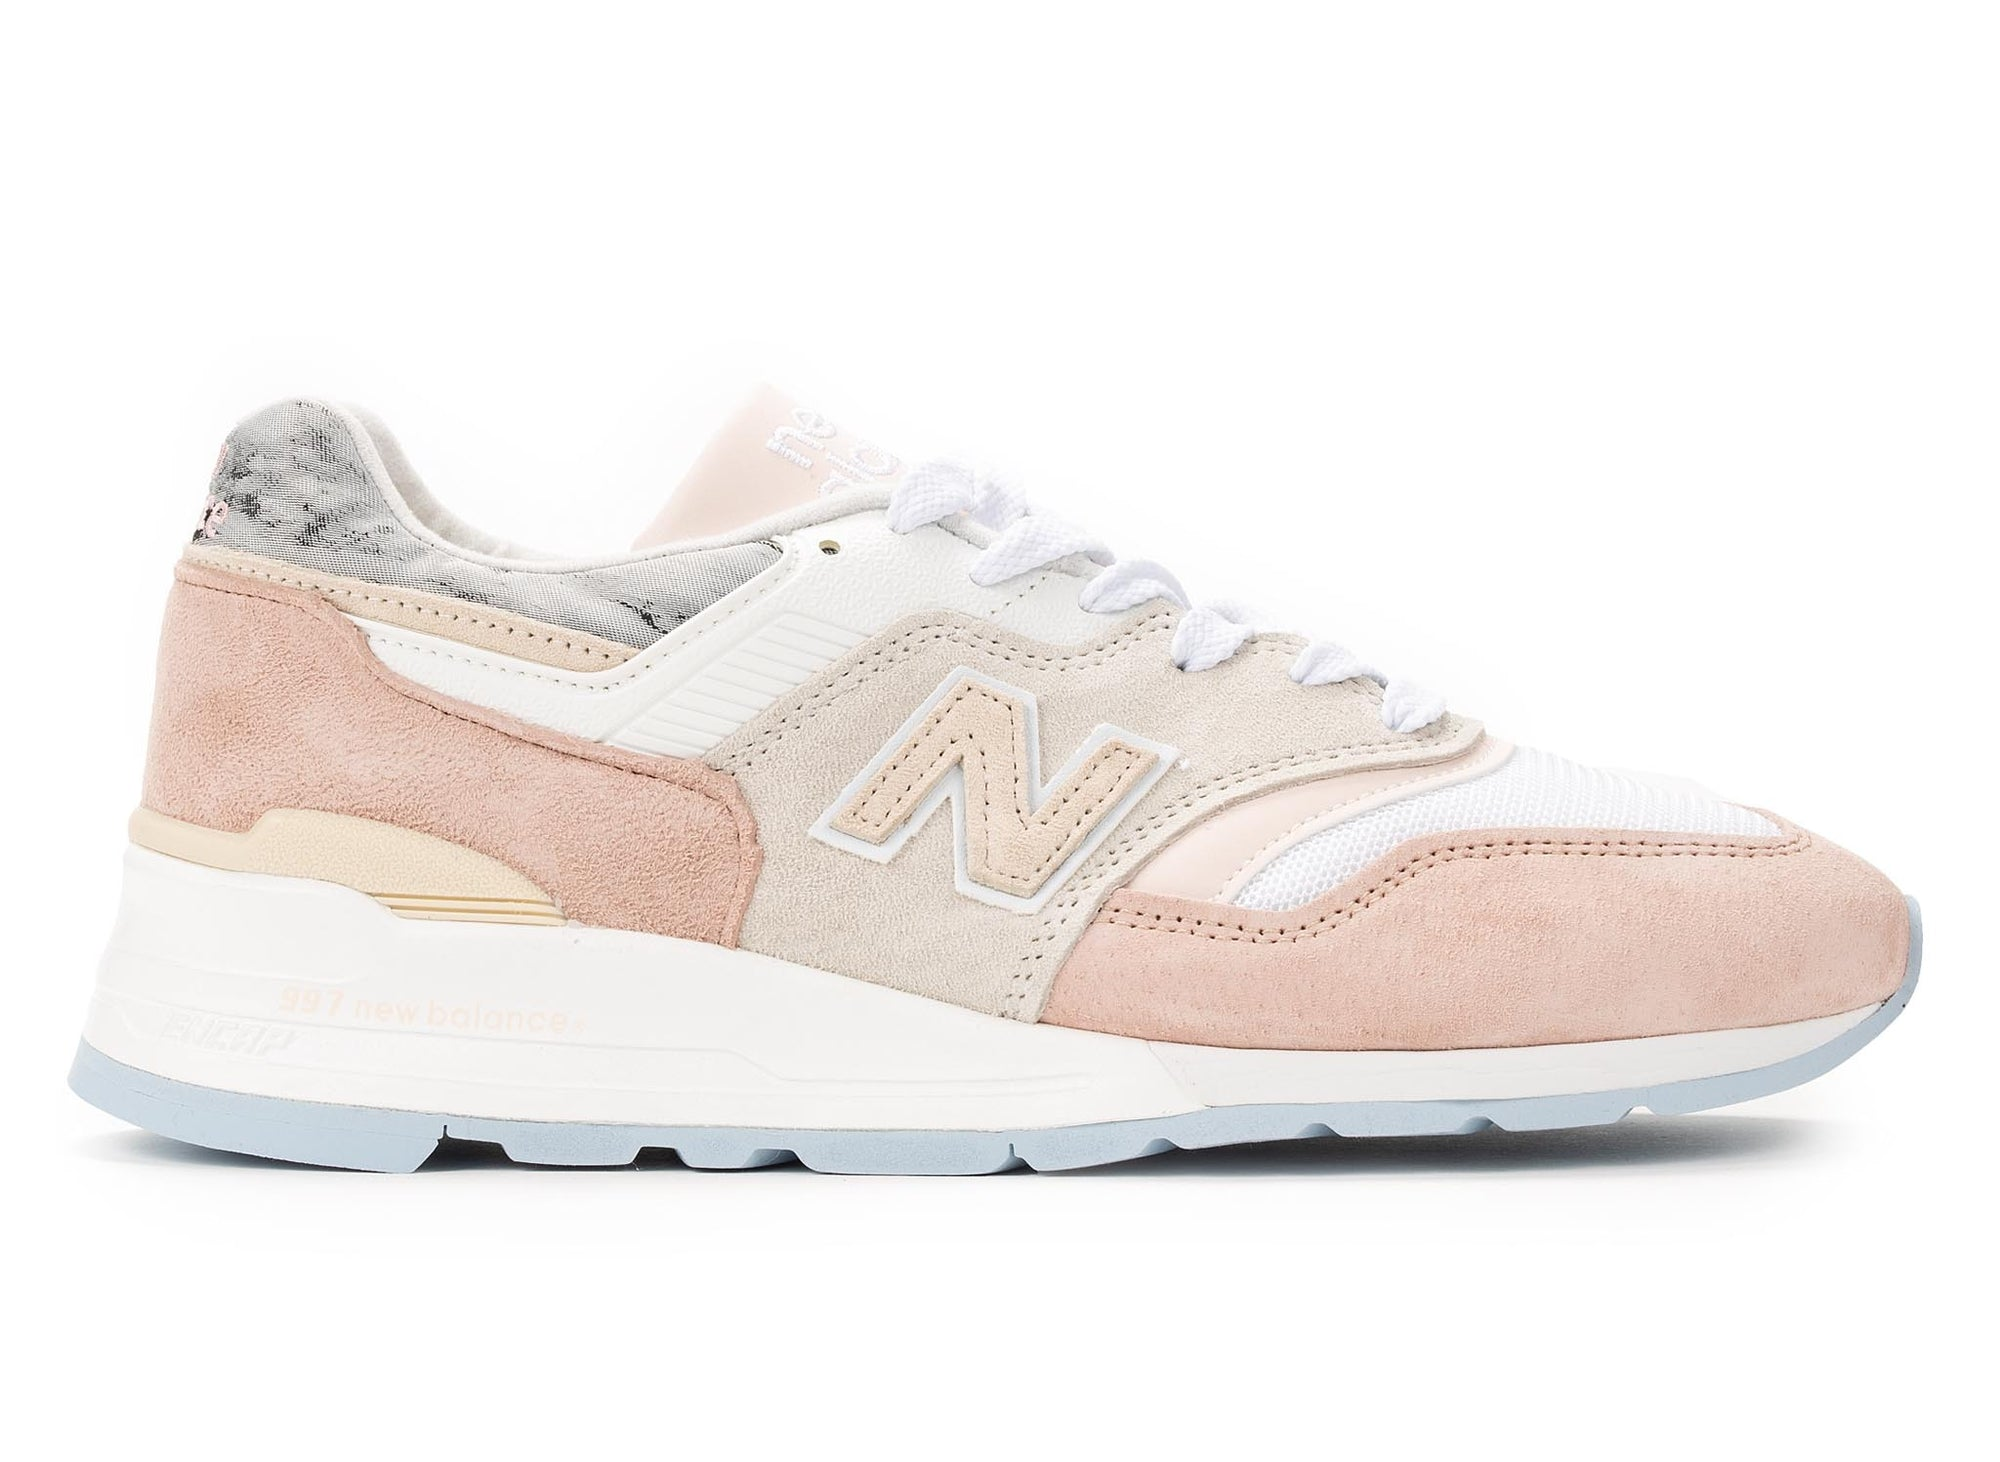 New Balance M997LBH 'Coastal Pack' xld